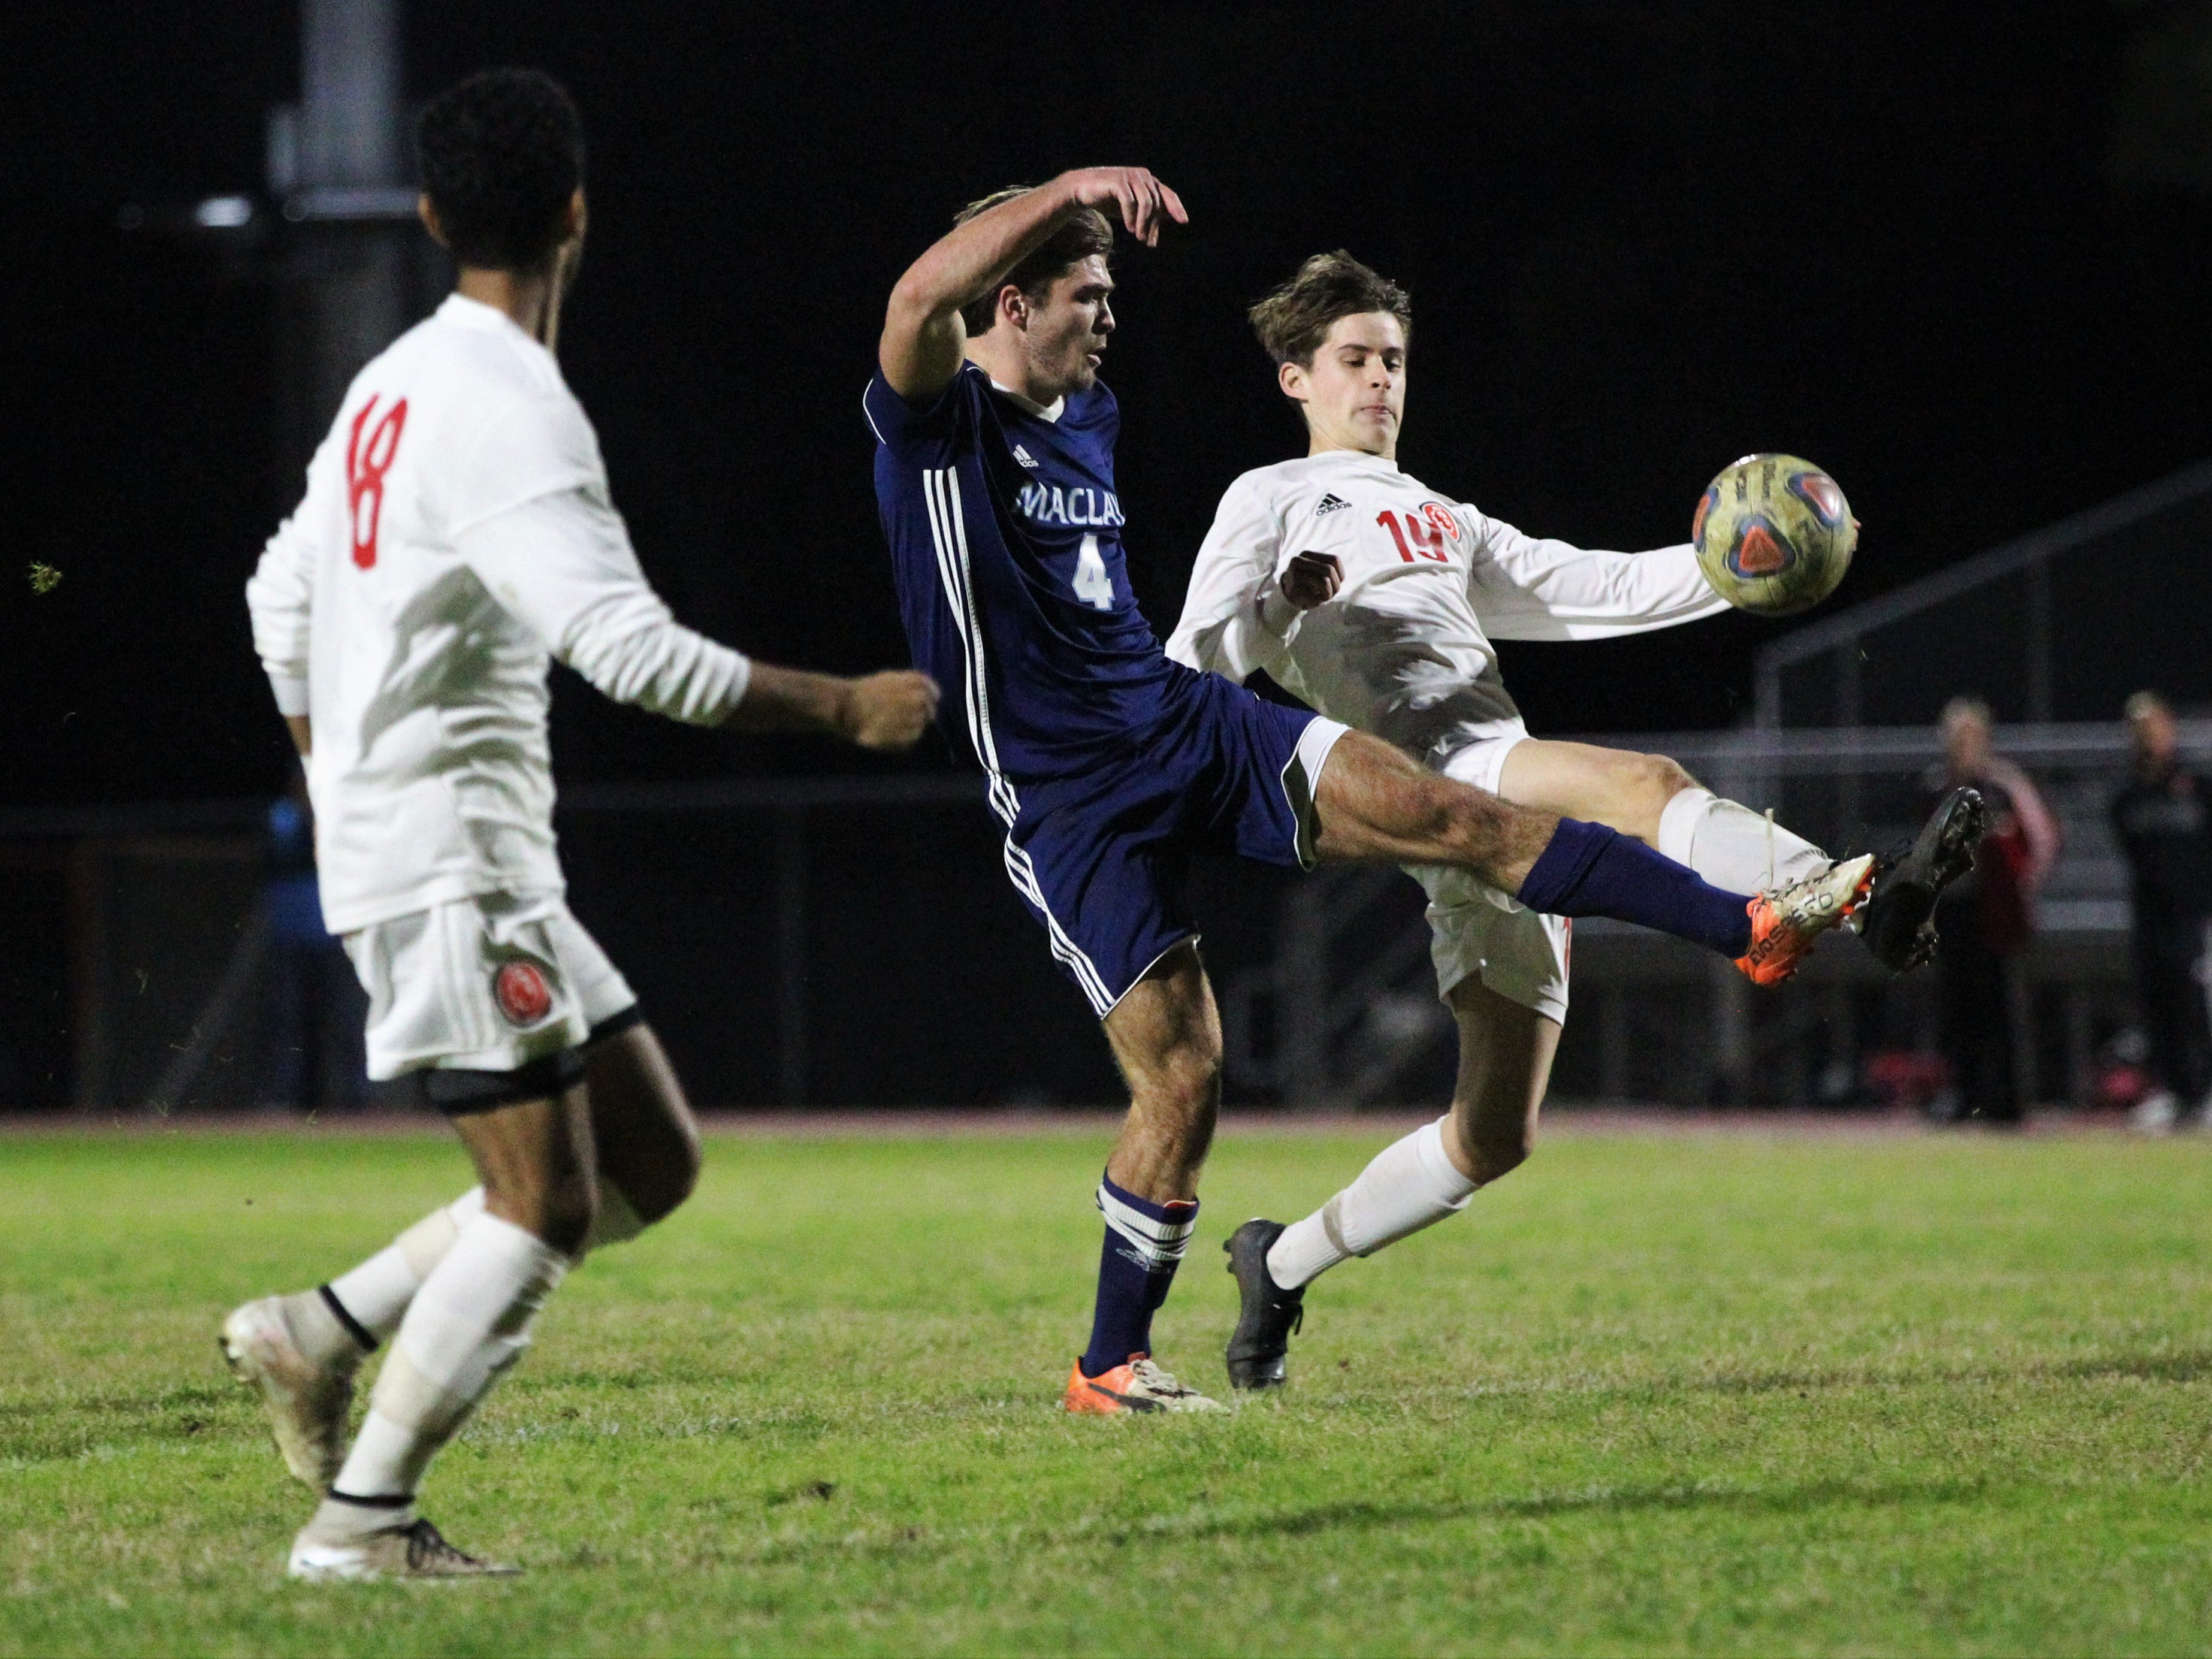 Maclay's Jordan Pichard and Leon's Antonio Nunez try to gain possession as Leon's boys soccer team beat Maclay 3-1 on Jan. 22, 2019.